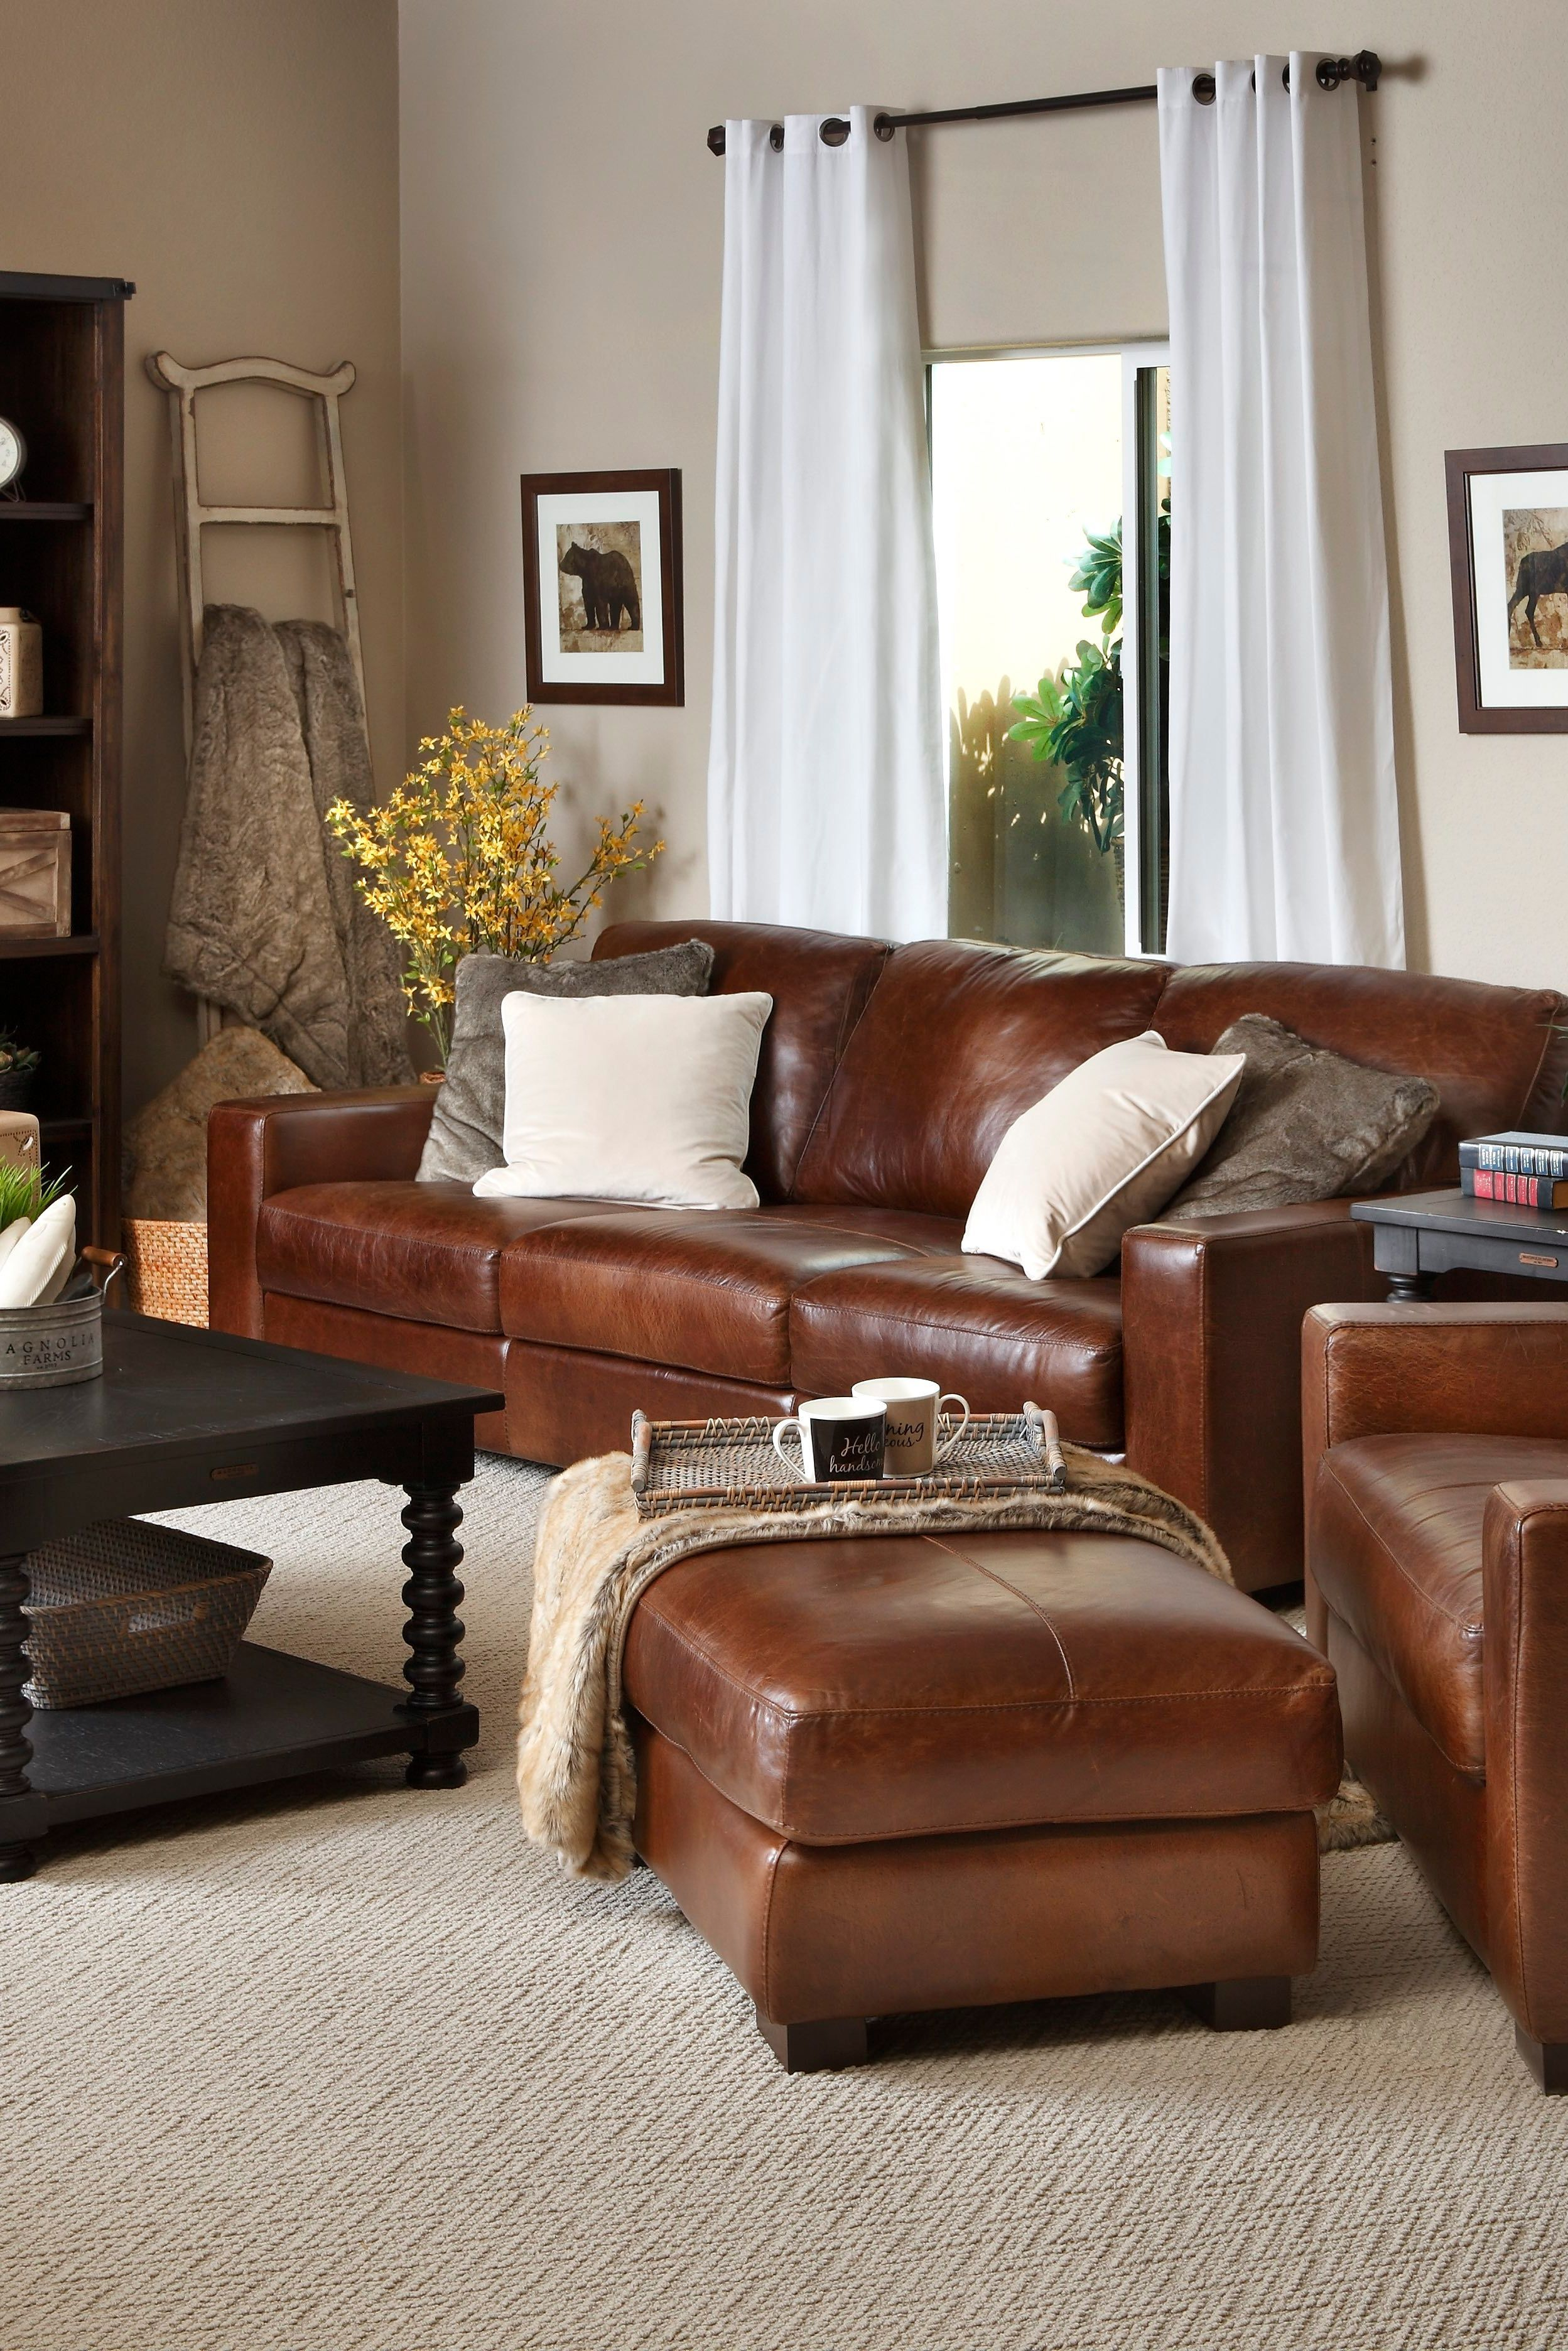 Durango Sofa Leather Sofa Living Room Brown Leather Sofa Living Room Leather Couches Living Room